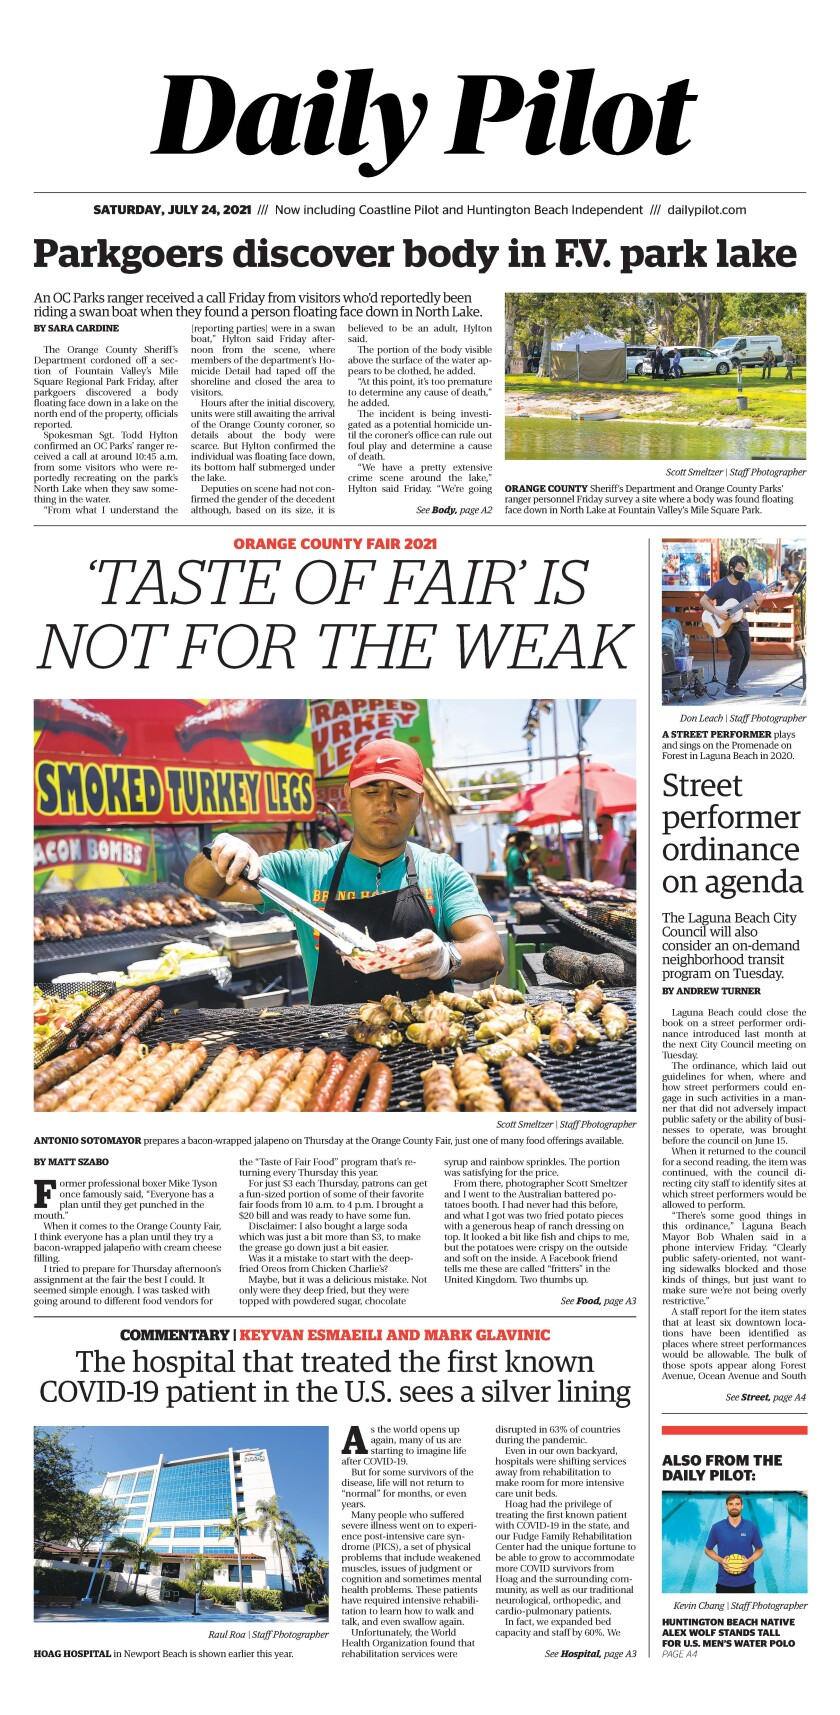 Front page of Daily Pilot e-newspaper for Saturday July 24, 2021.